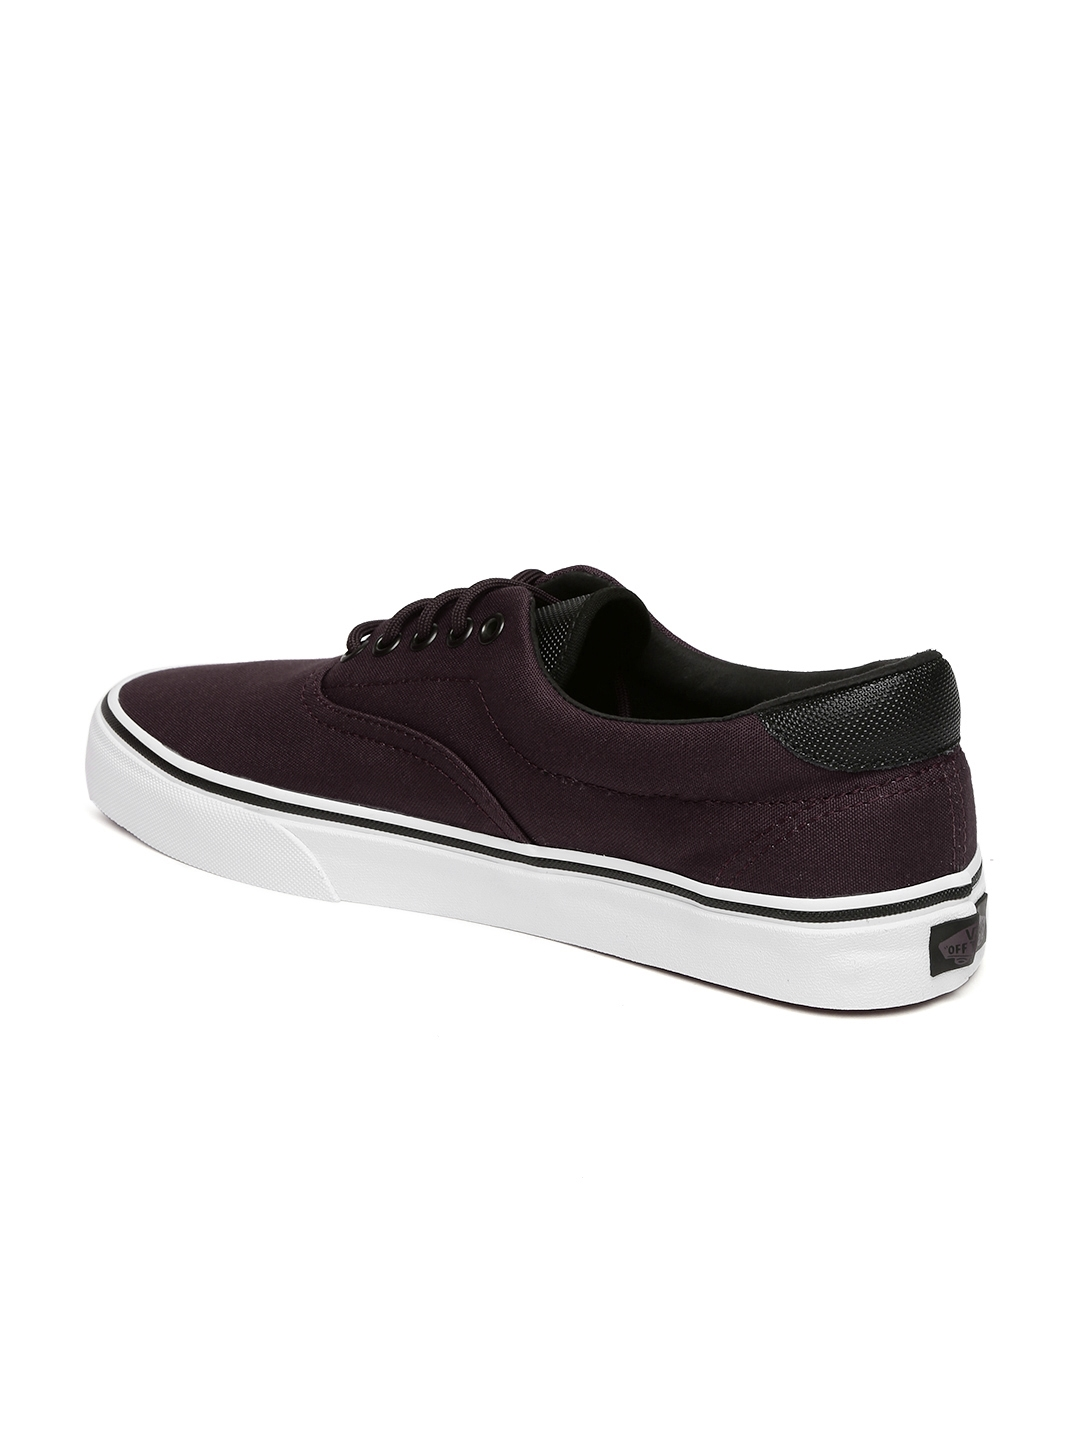 8046ab9e0a Buy Vans Unisex Burgundy Era 59 Sneakers - Casual Shoes for Unisex ...